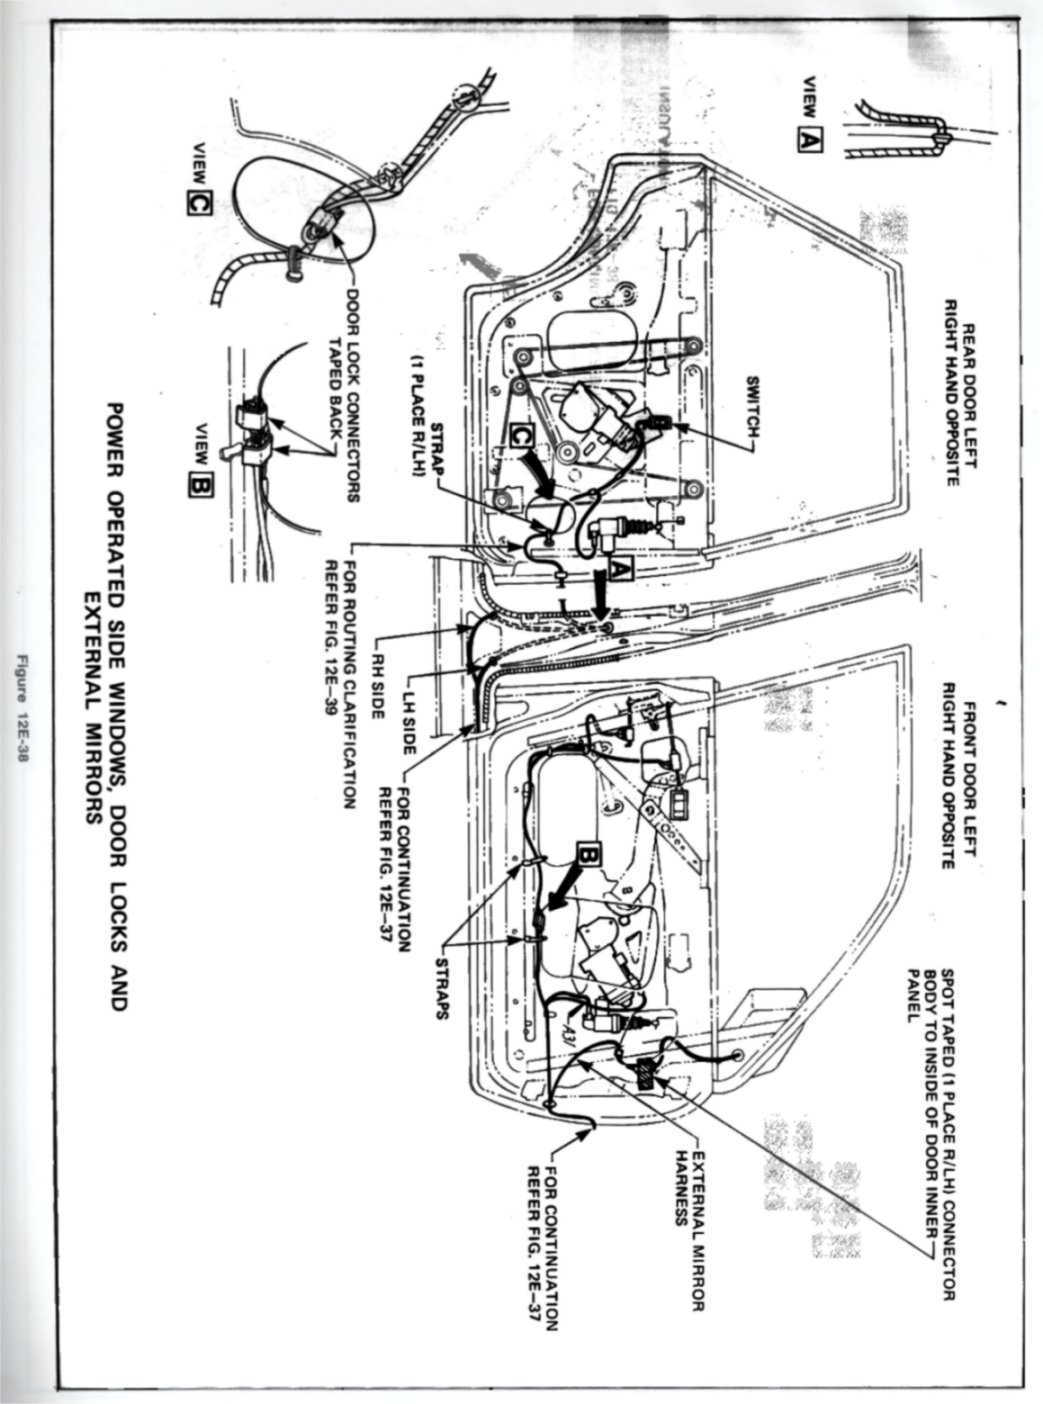 Vn Wiring Diagram Free Download Diagrams Pictures. Harness